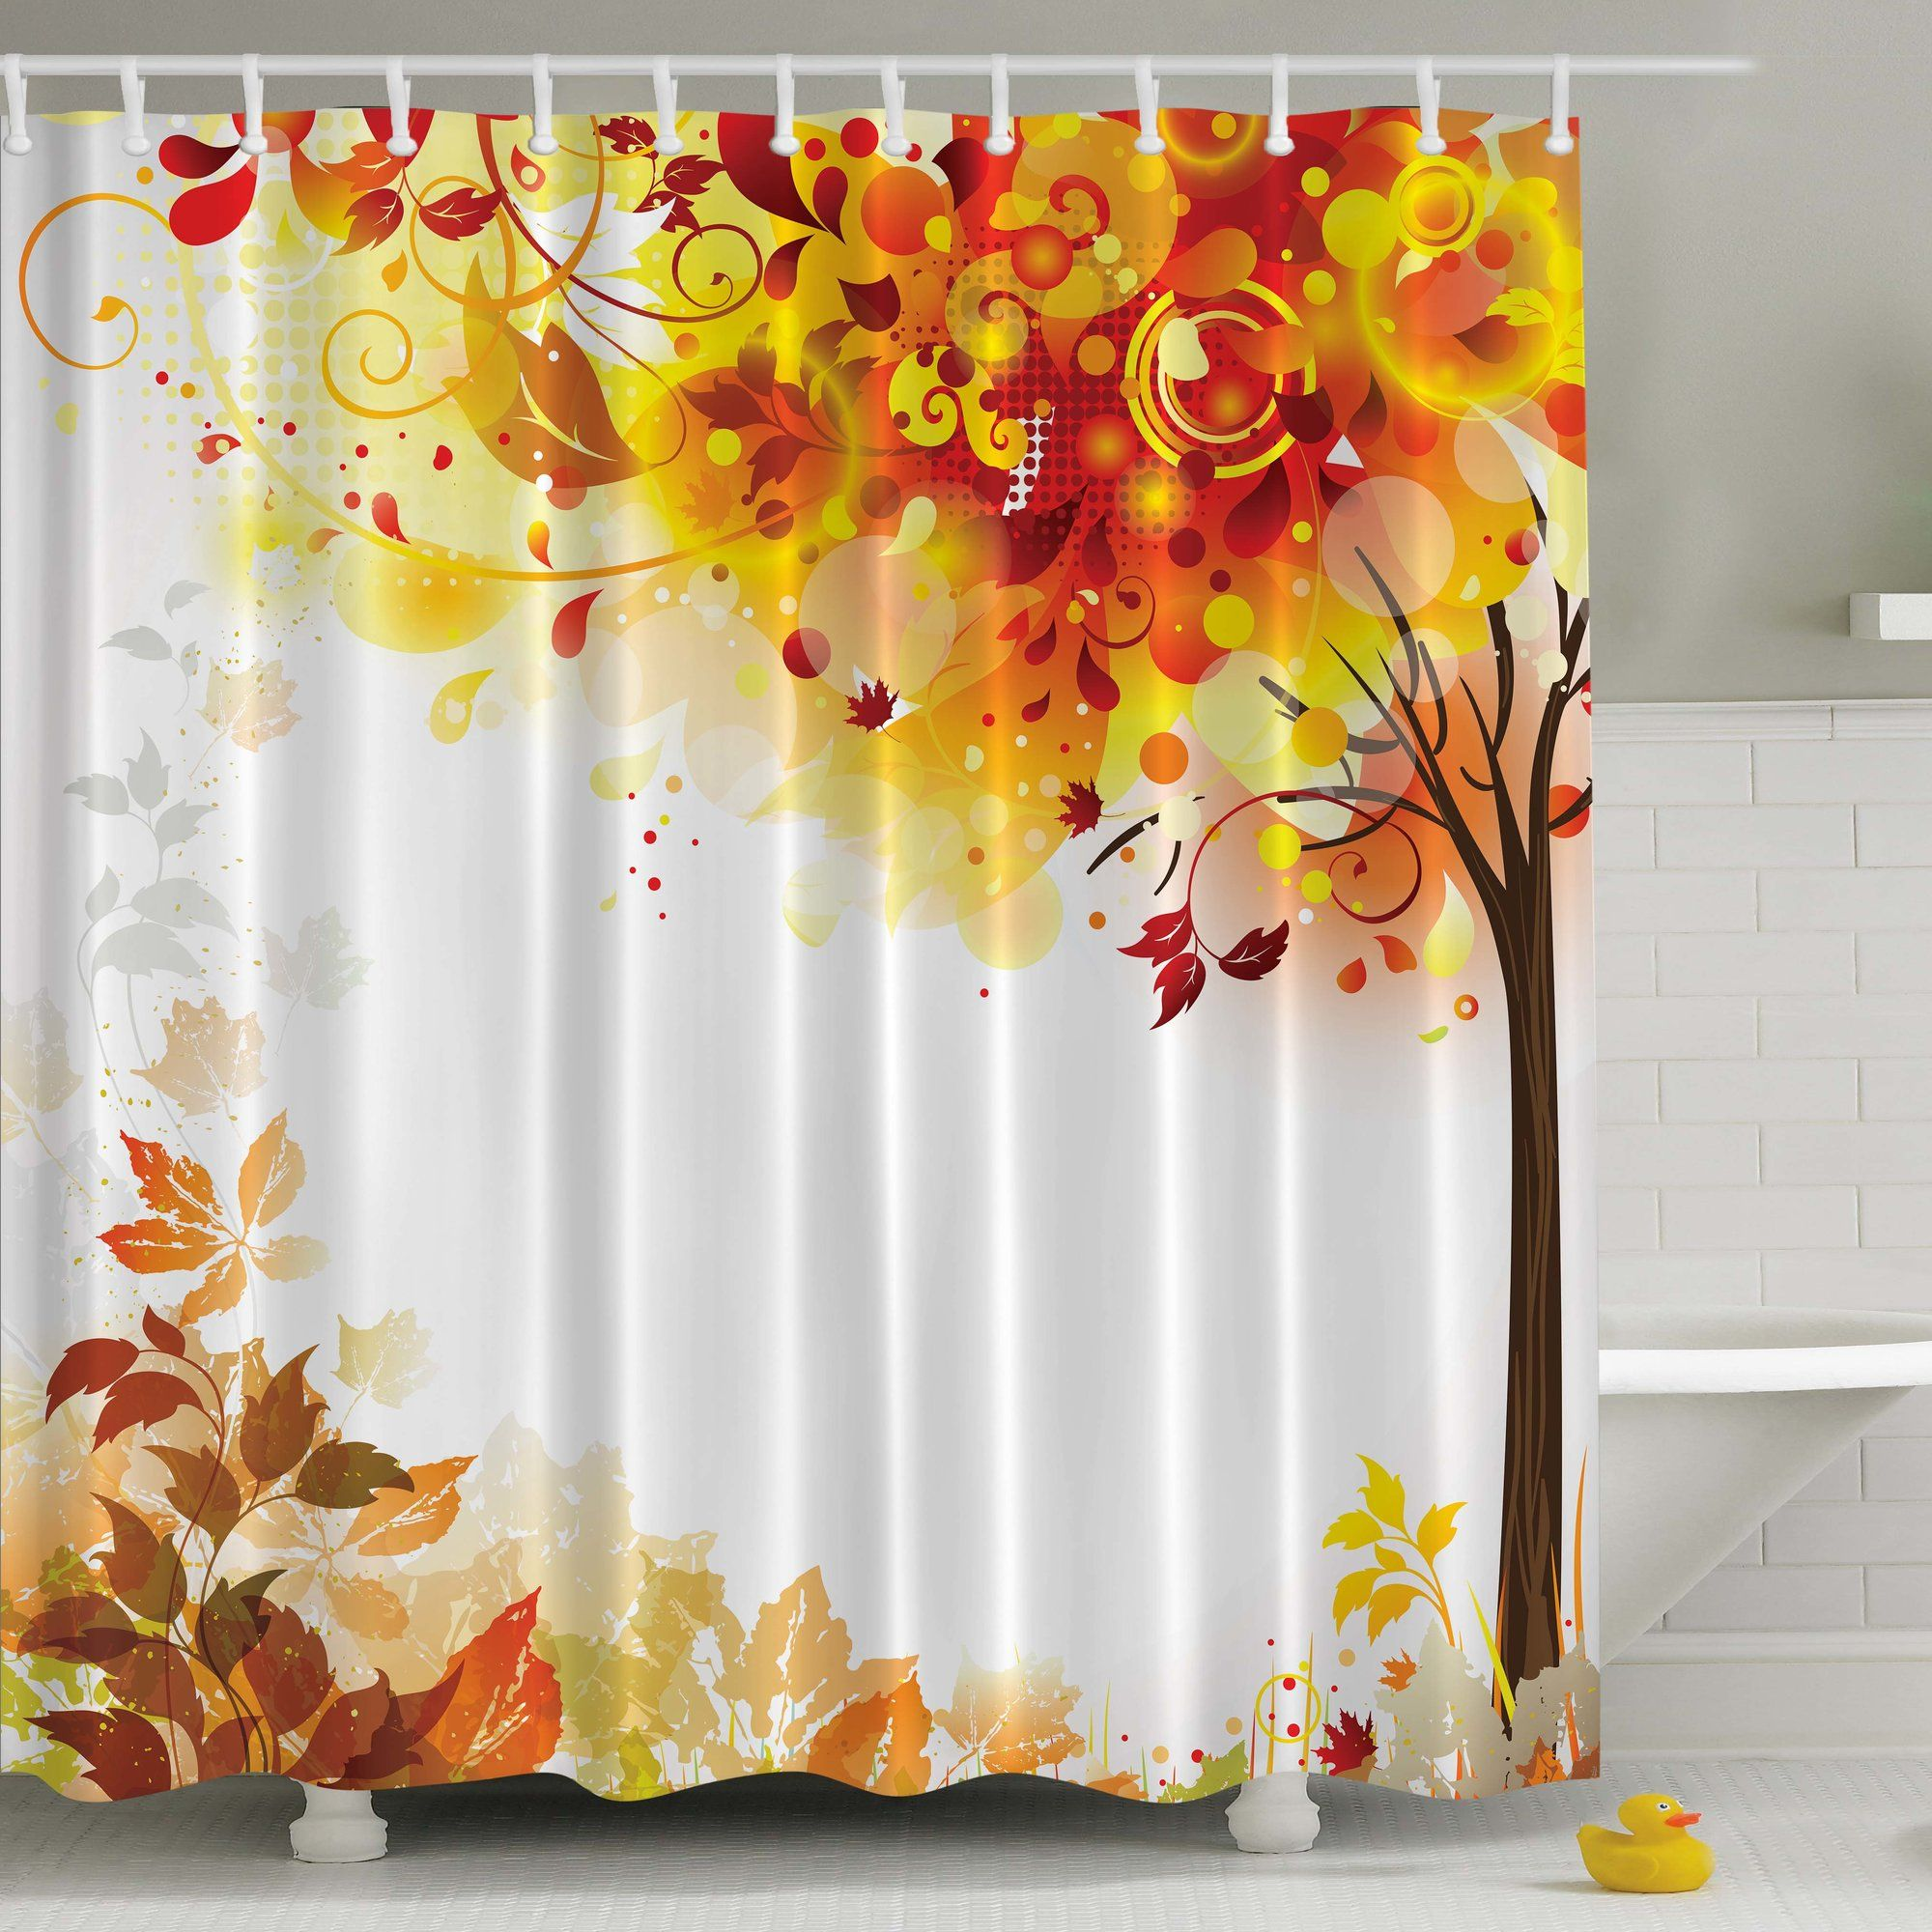 Fall Leaves Print Shower Curtain Orange Shower Curtain Tree Shower Curtains Shower Curtain